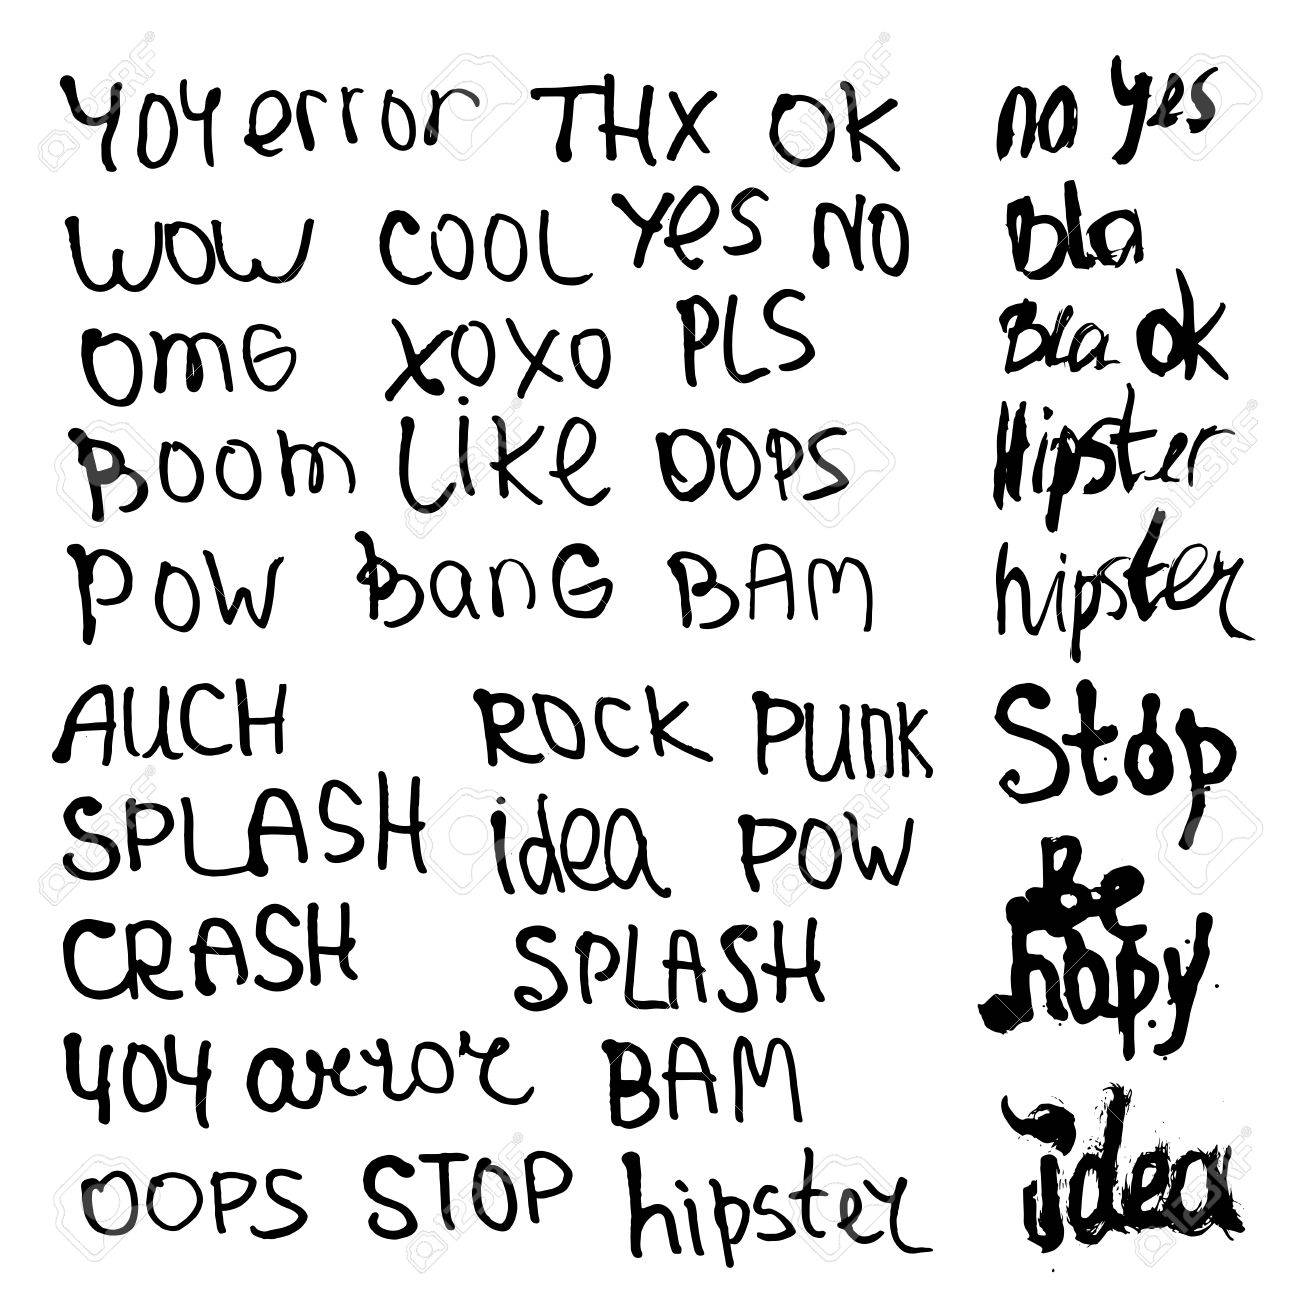 Hand drawn set with short phrases, words and slang on white background